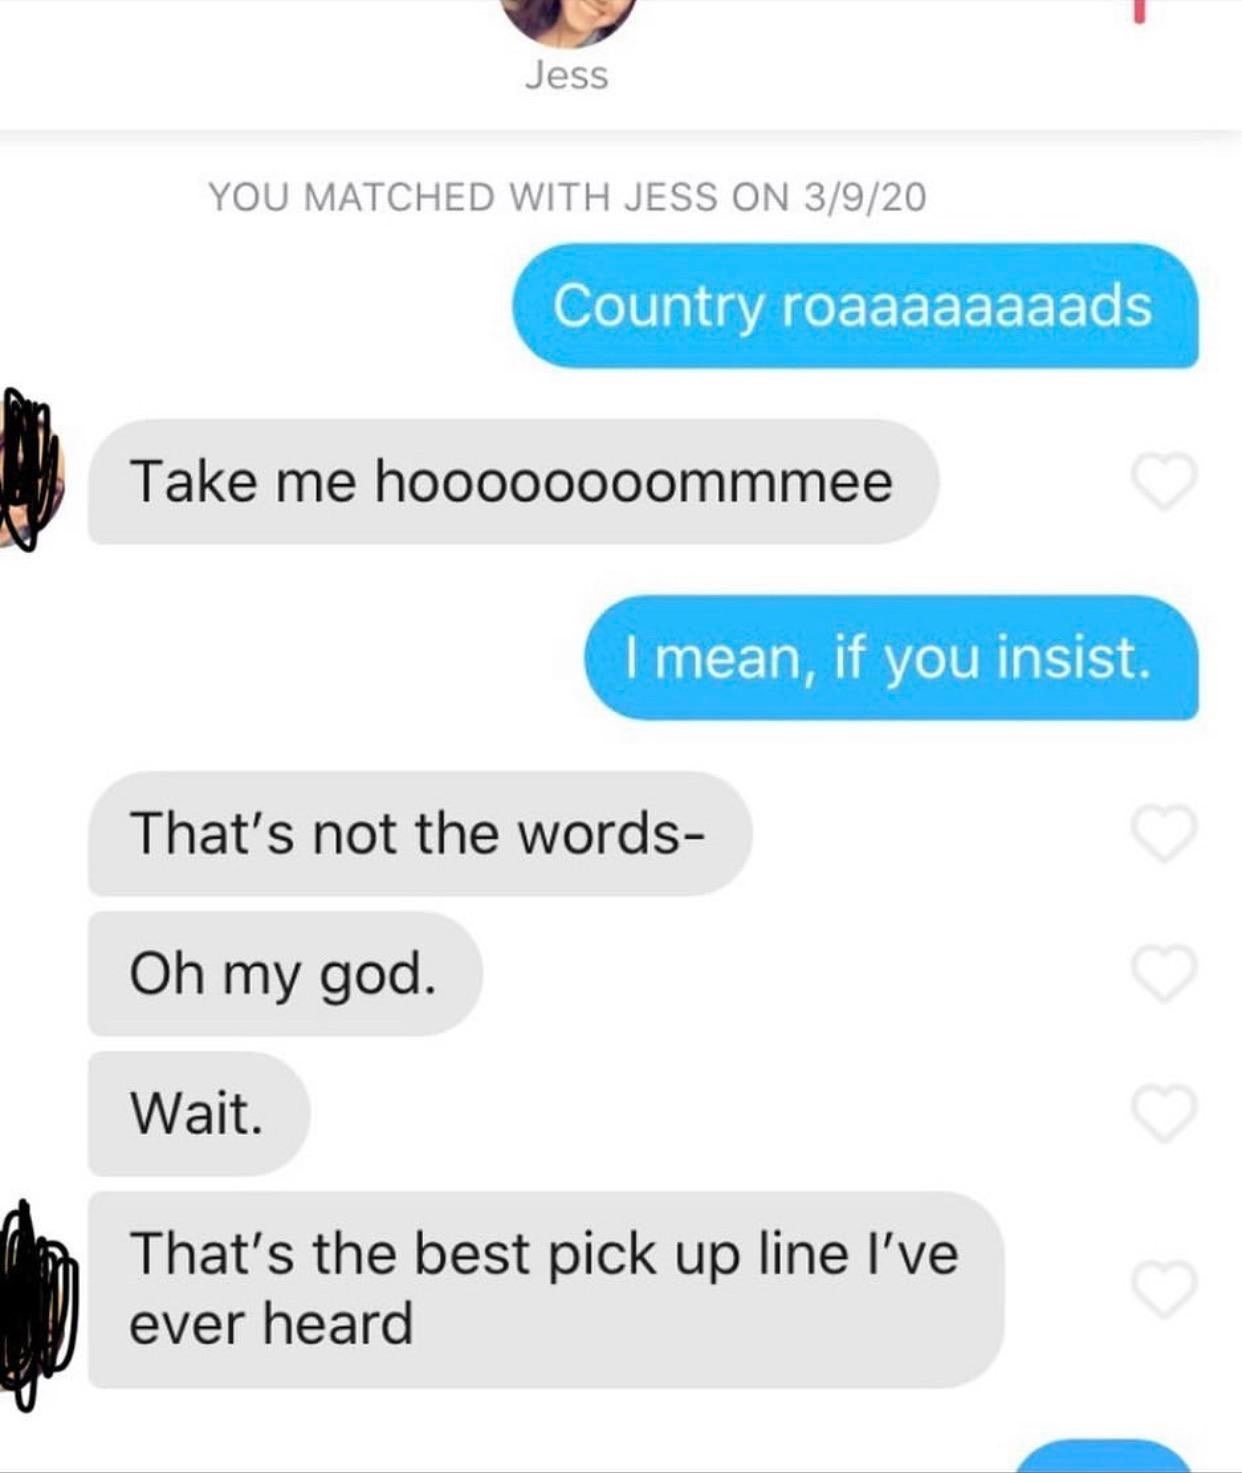 Up sexiest ever pick lines The Worst